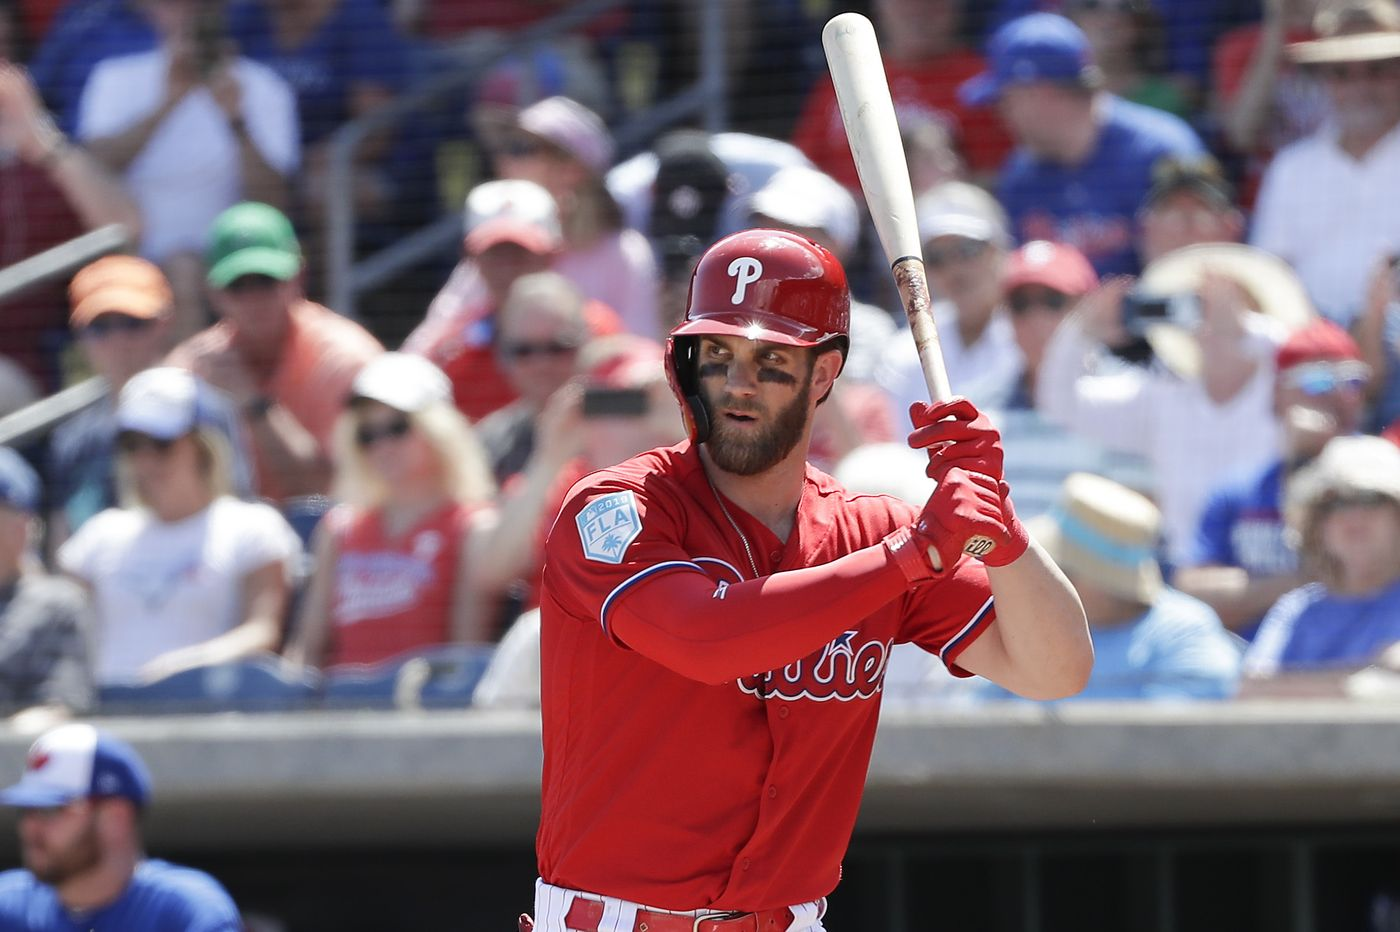 Bryce Harper gets ready for an at bat in Spring Training.